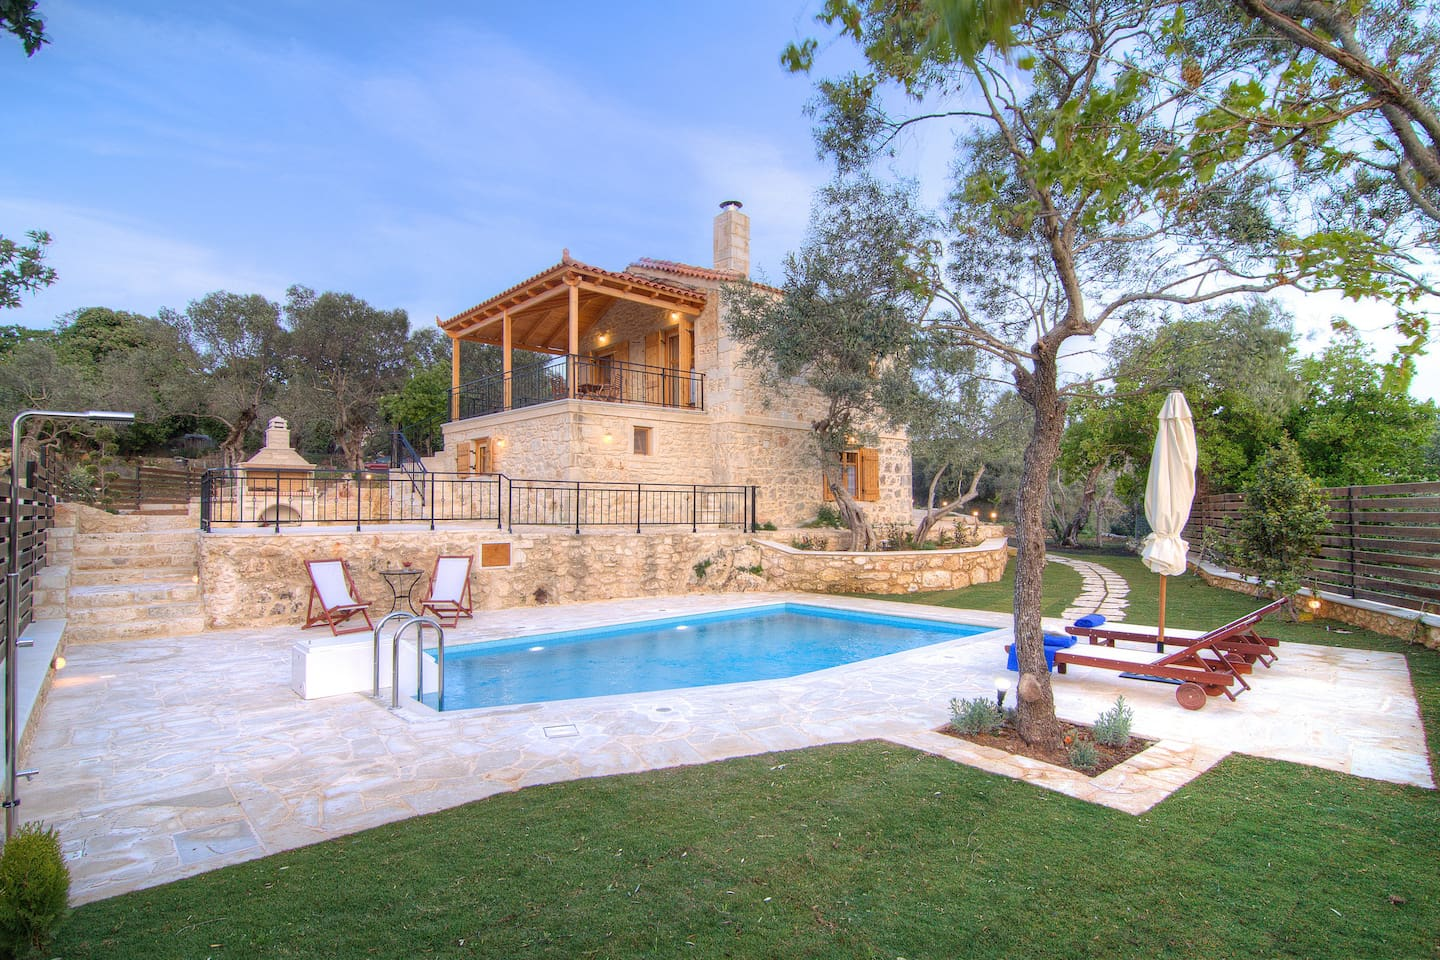 Overview of the villa, garden-park and swimming pool